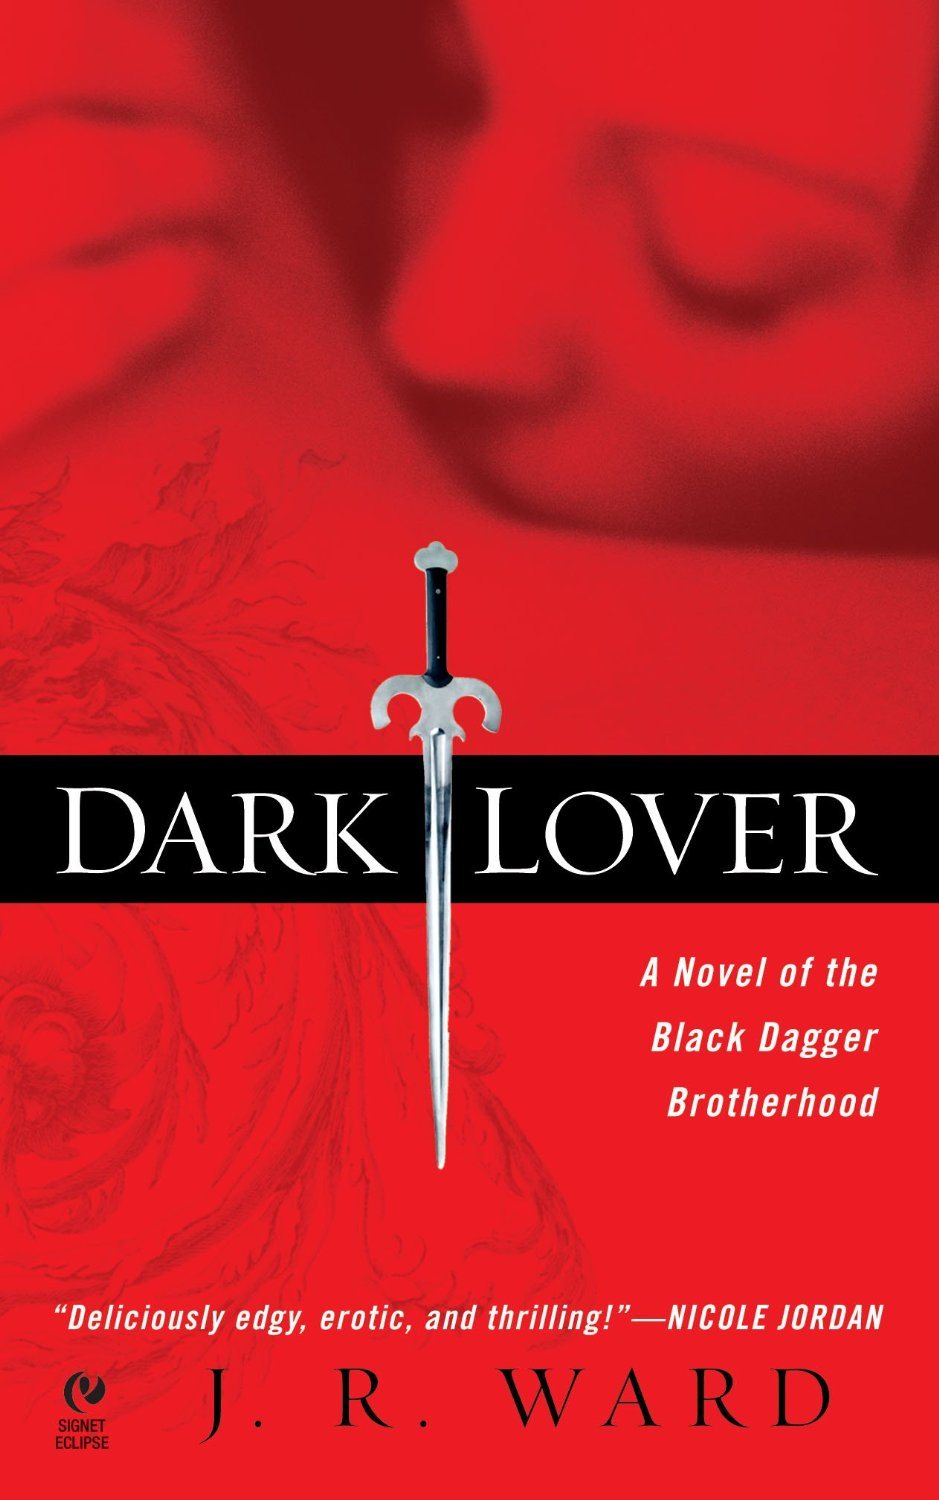 Review – Dark Lover by J.R. Ward